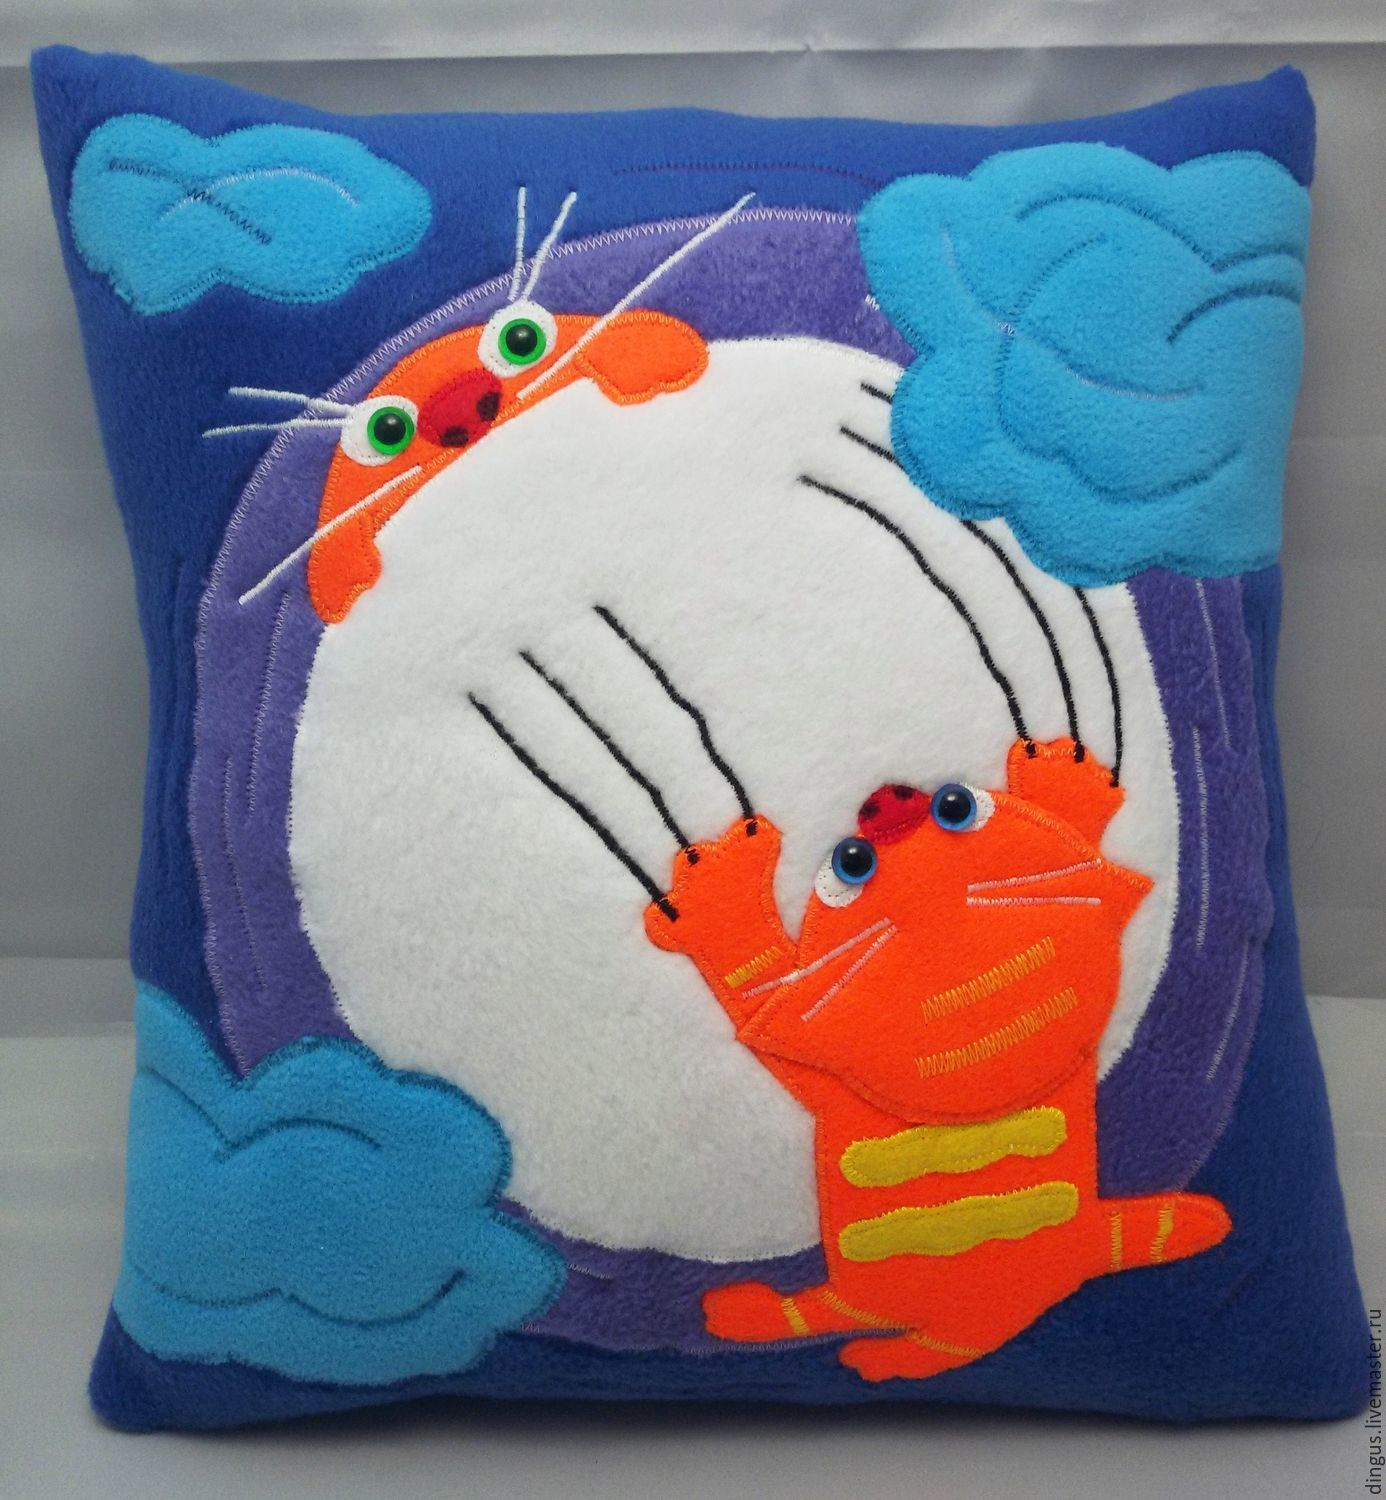 Pillow decorative red cat applique felt, cat on the moon, Pillow, Moscow,  Фото №1